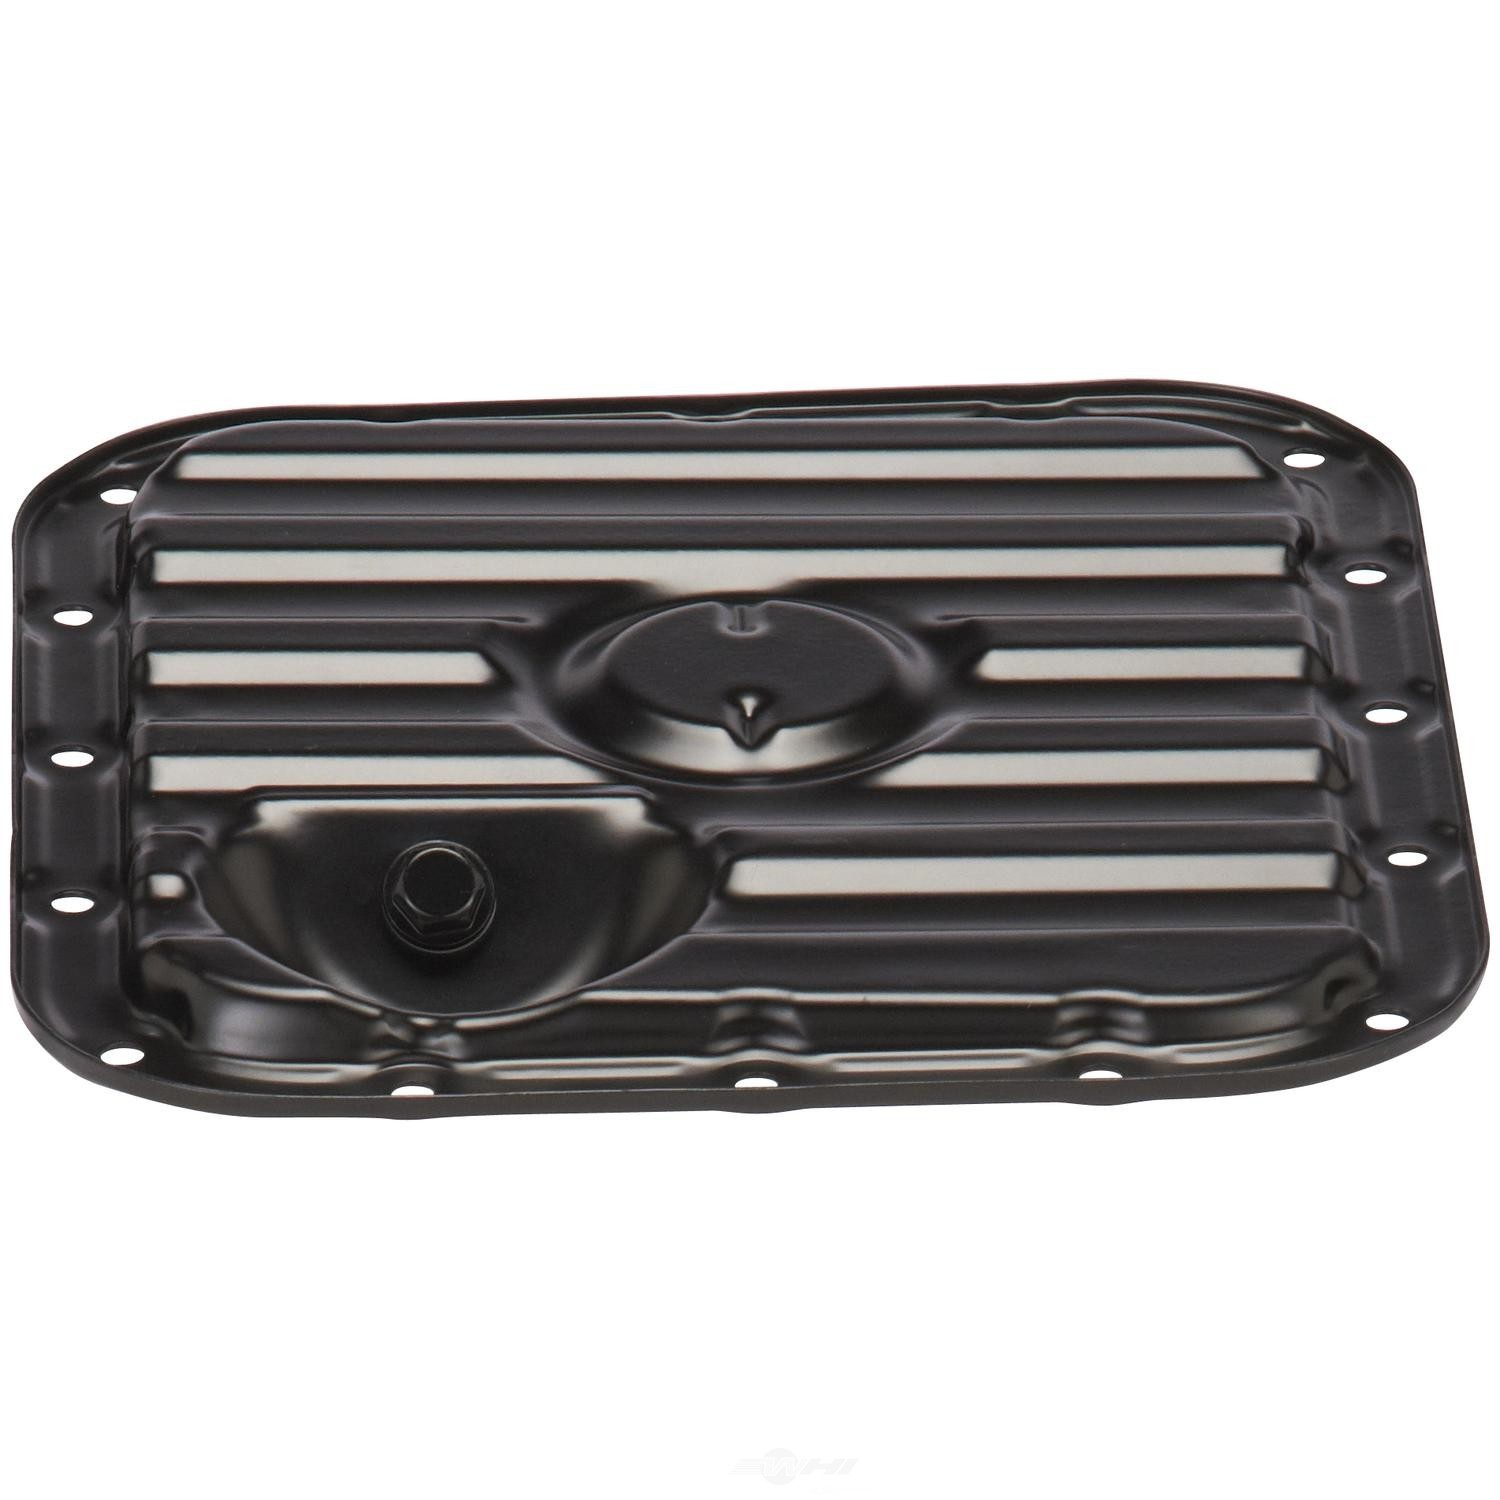 SPECTRA PREMIUM IND, INC. - Engine Oil Pan (Lower) - SPC TOP36A